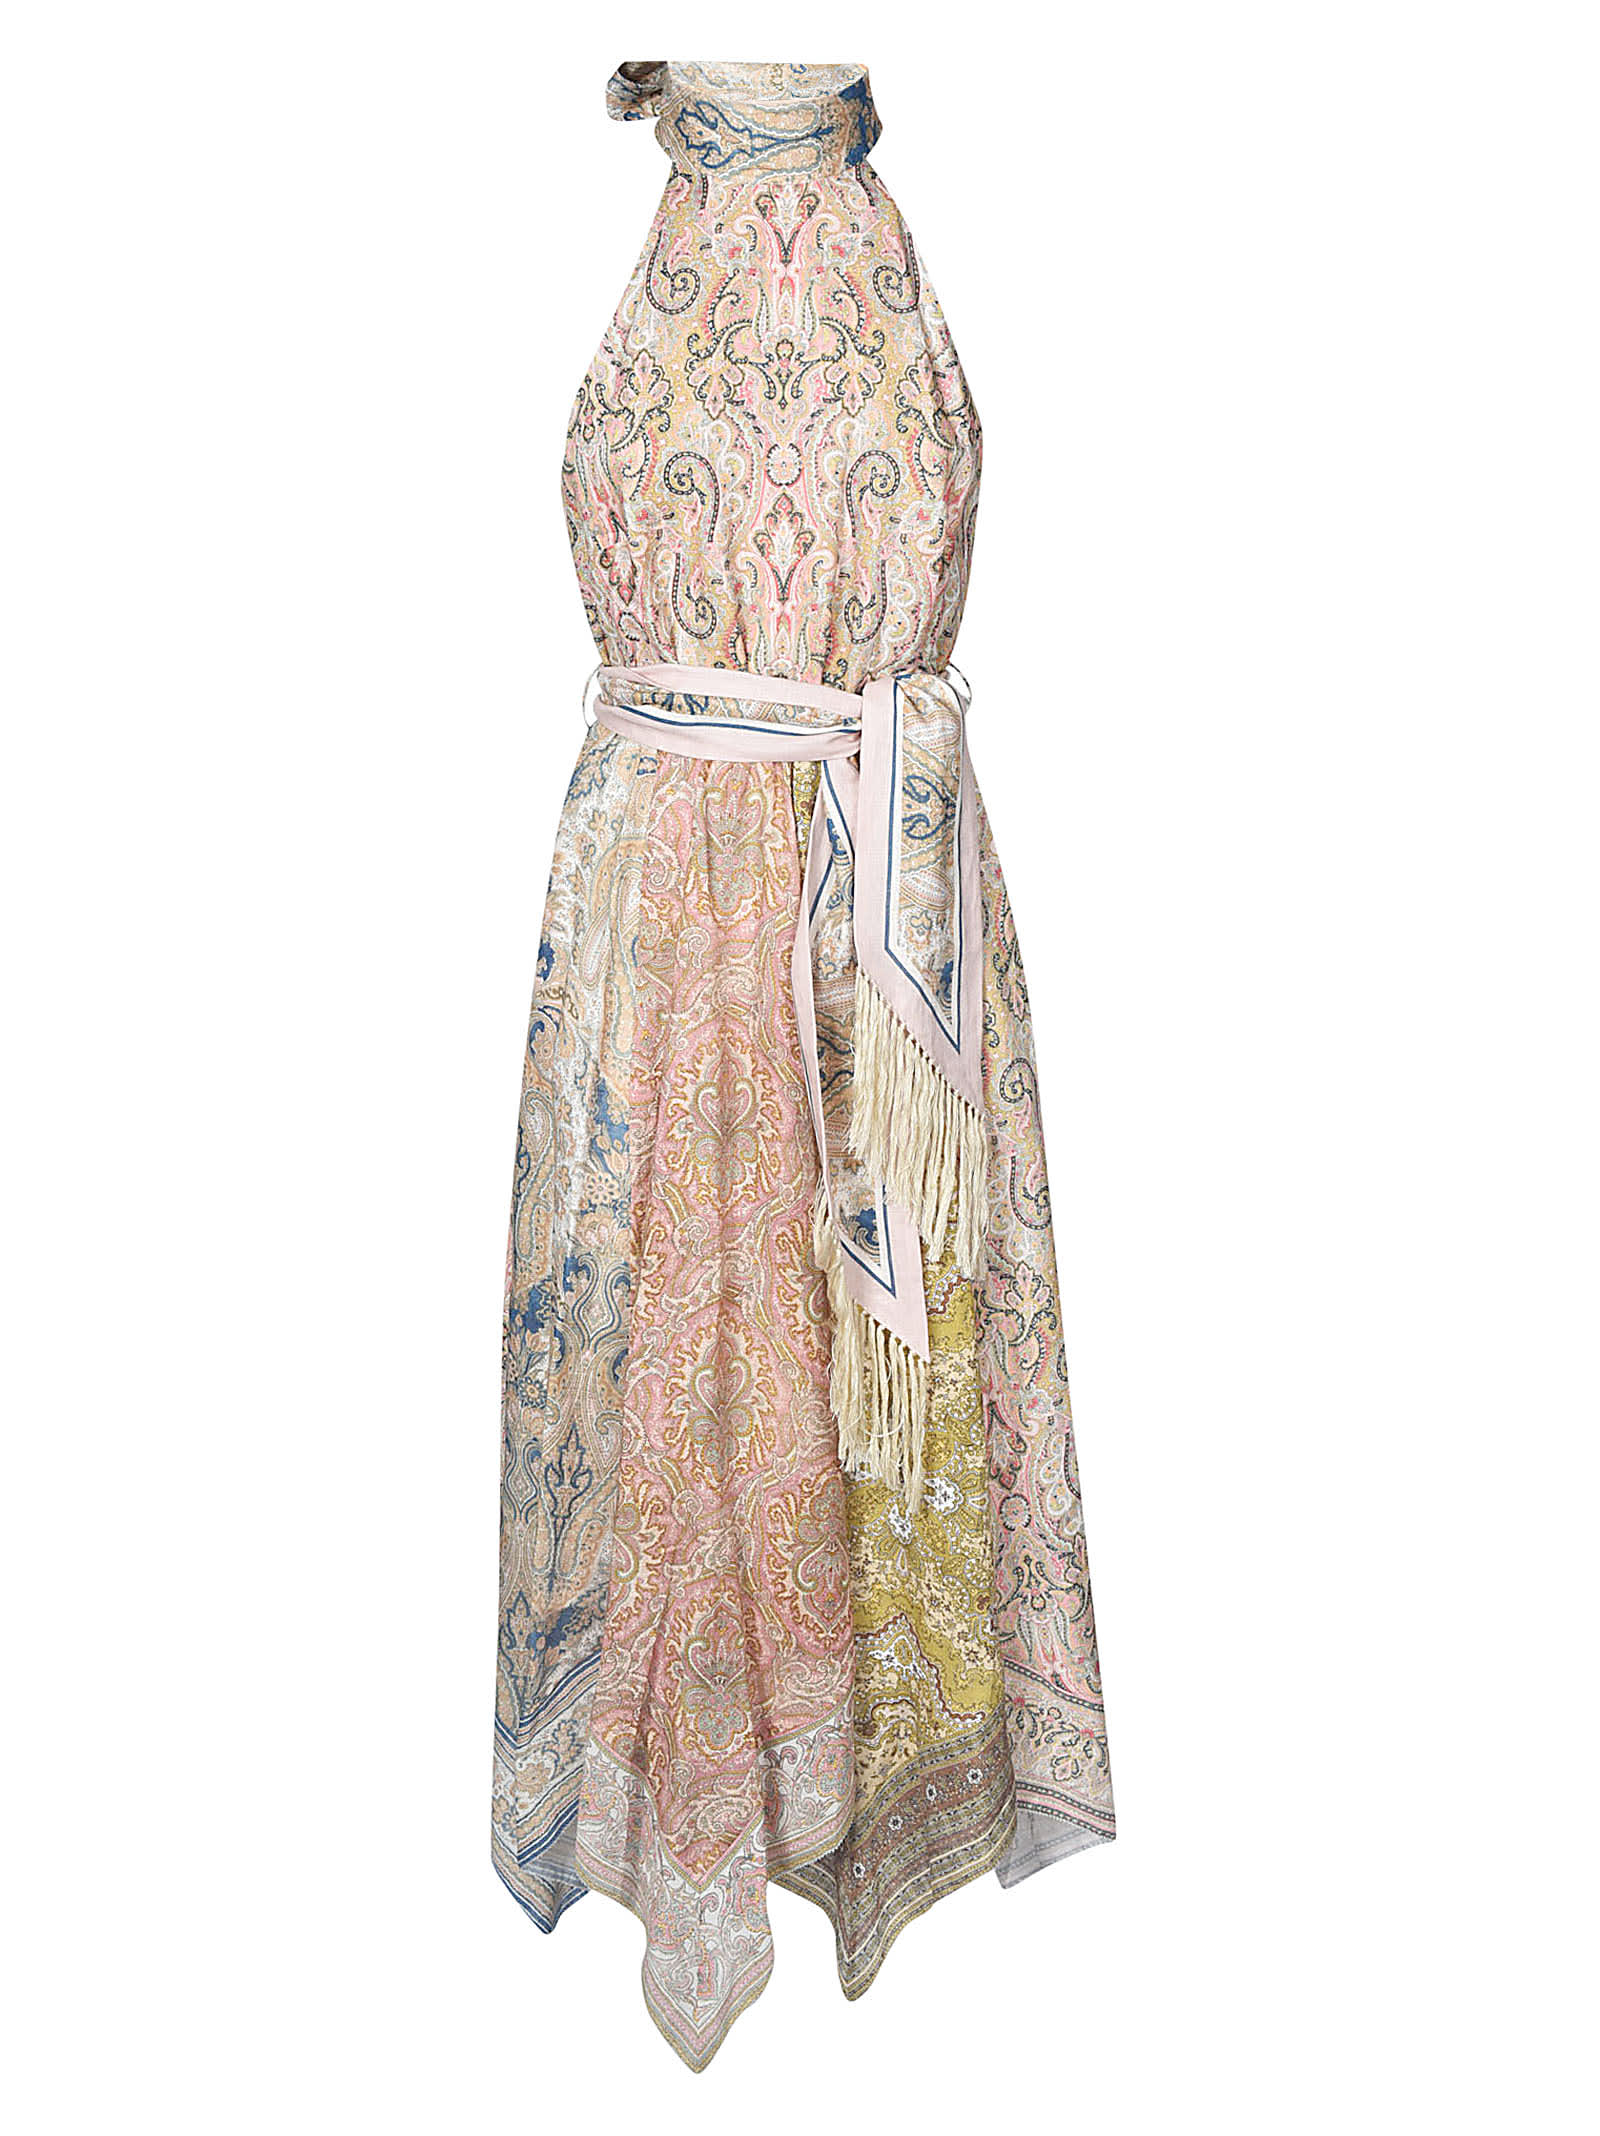 Buy Zimmermann Sleeveless Printed Tied Waist Dress online, shop Zimmermann with free shipping